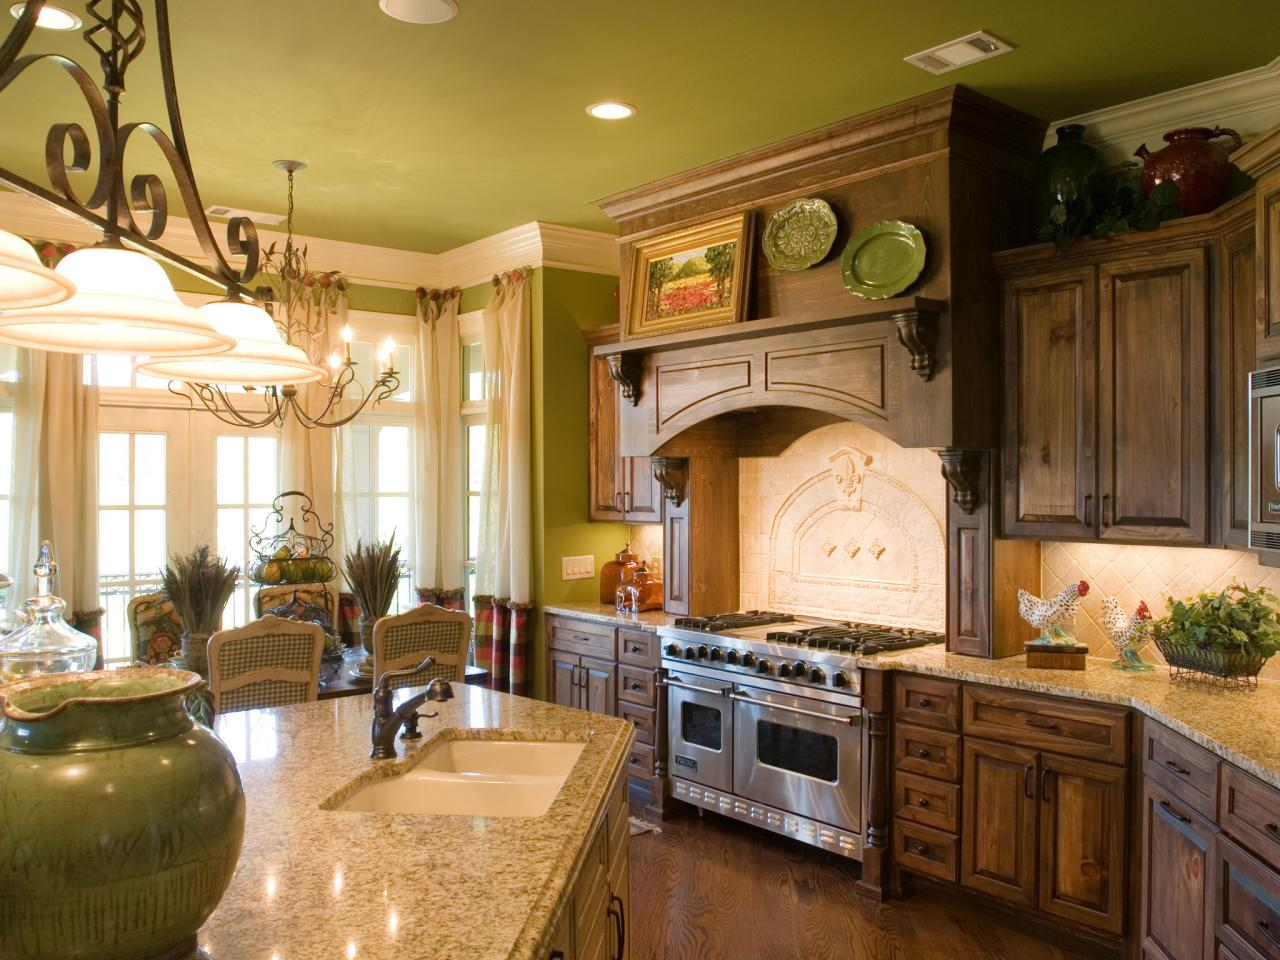 French country kitchen cabinets pictures ideas from Look for design kitchen